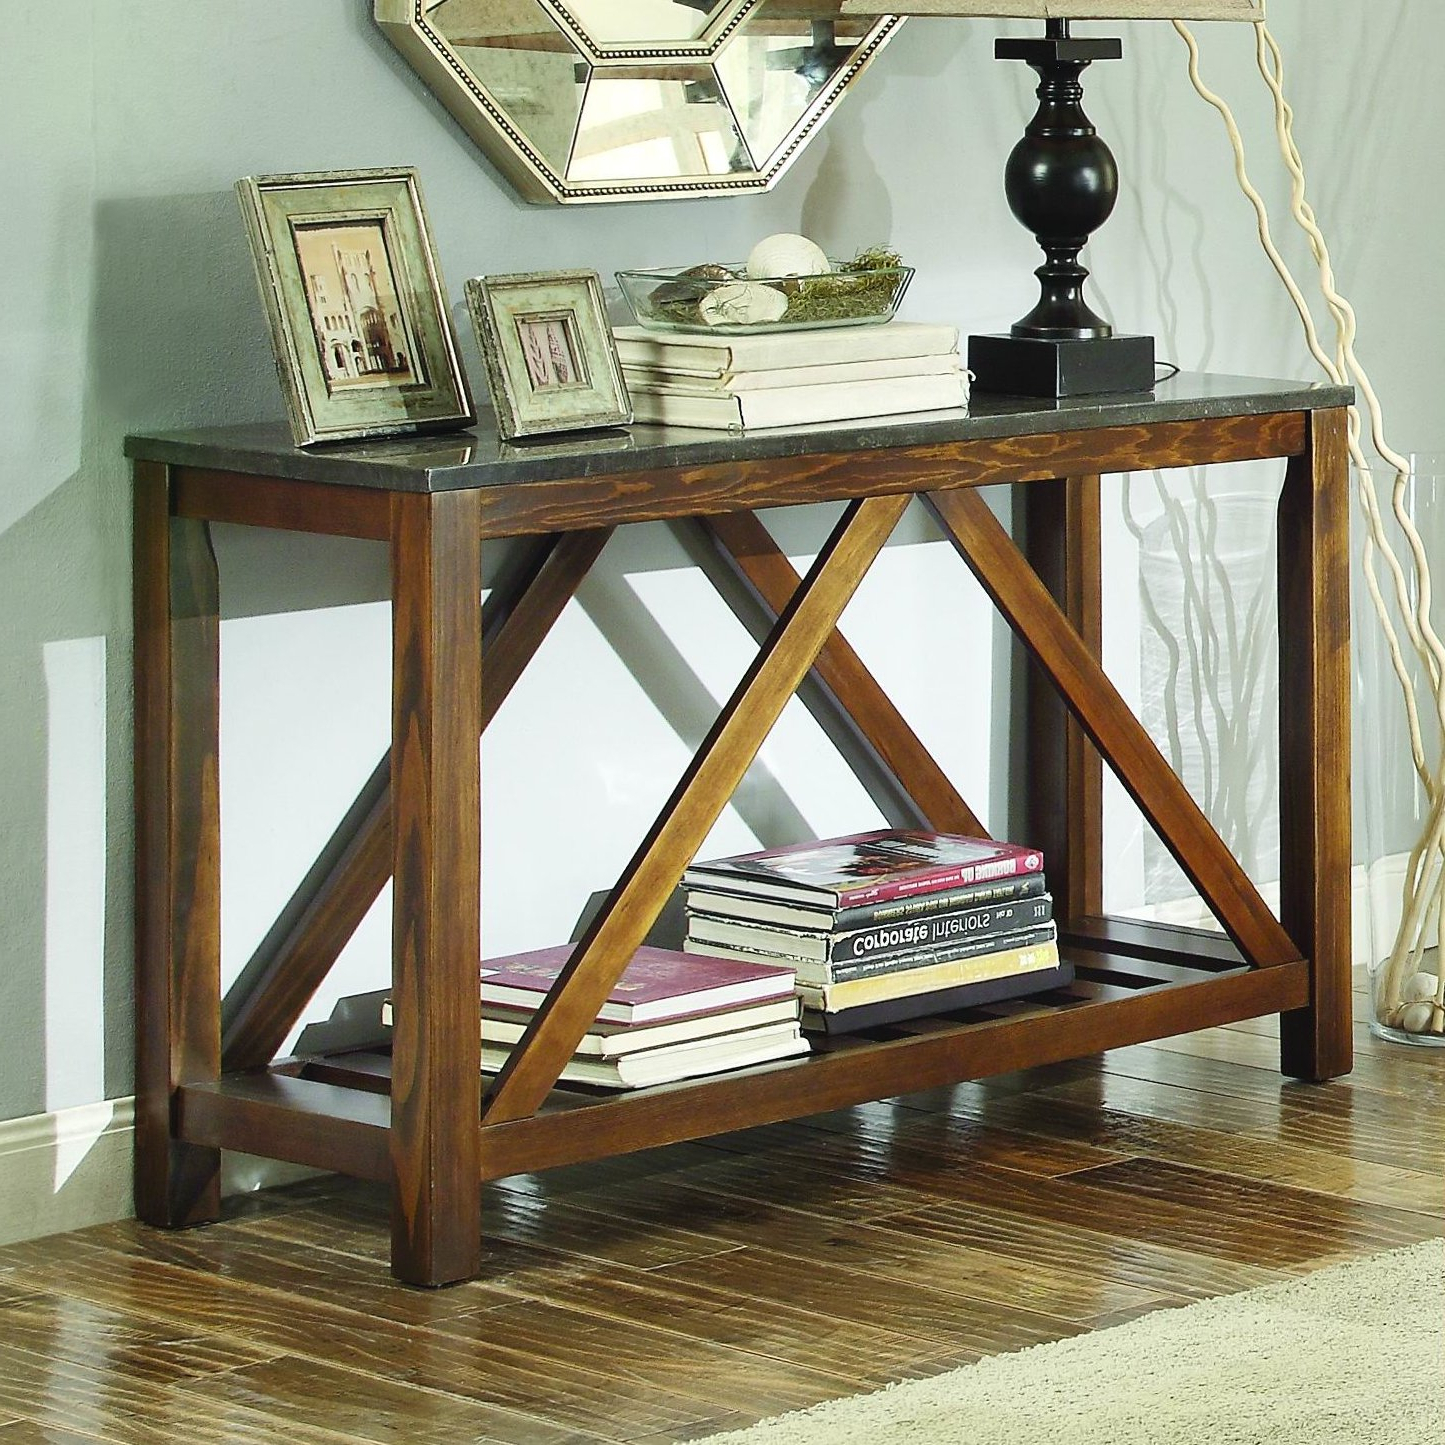 Homelegance Ashby Console Table | Wayfair Regarding Bluestone Console Tables (View 12 of 20)